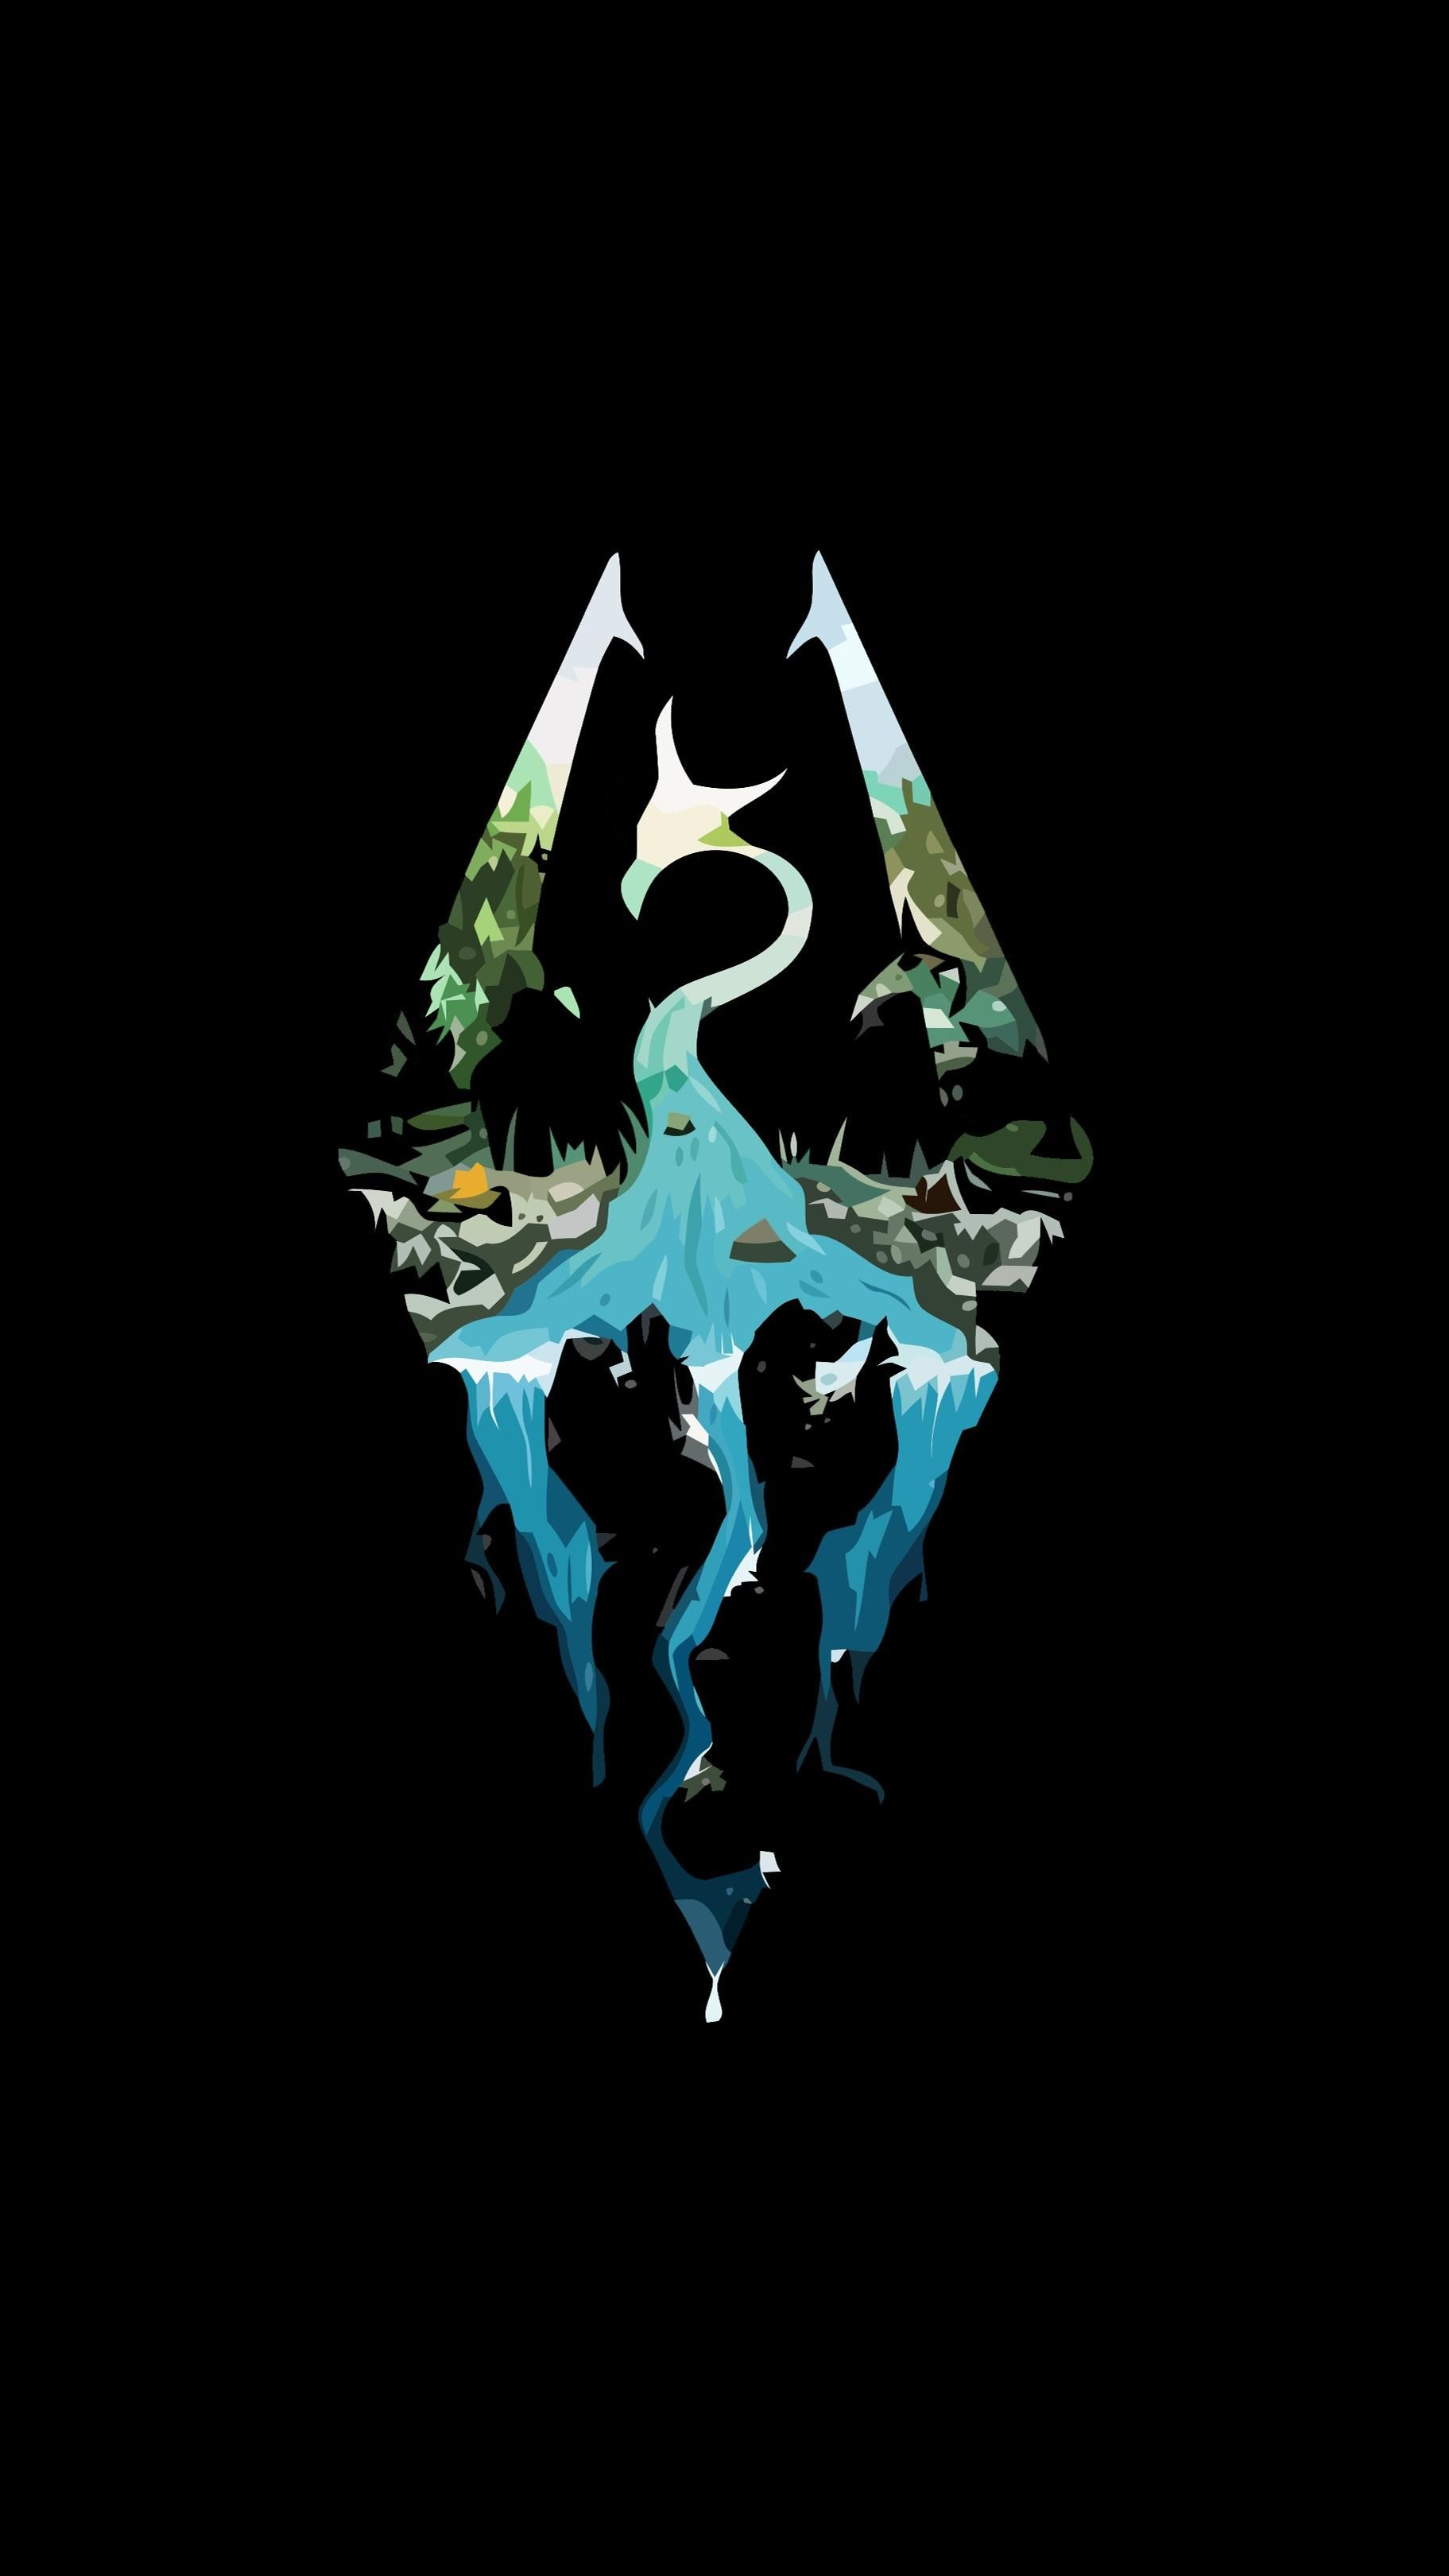 Phone wallpaper Skyrim logo games Skyrim elderscrolls BE3